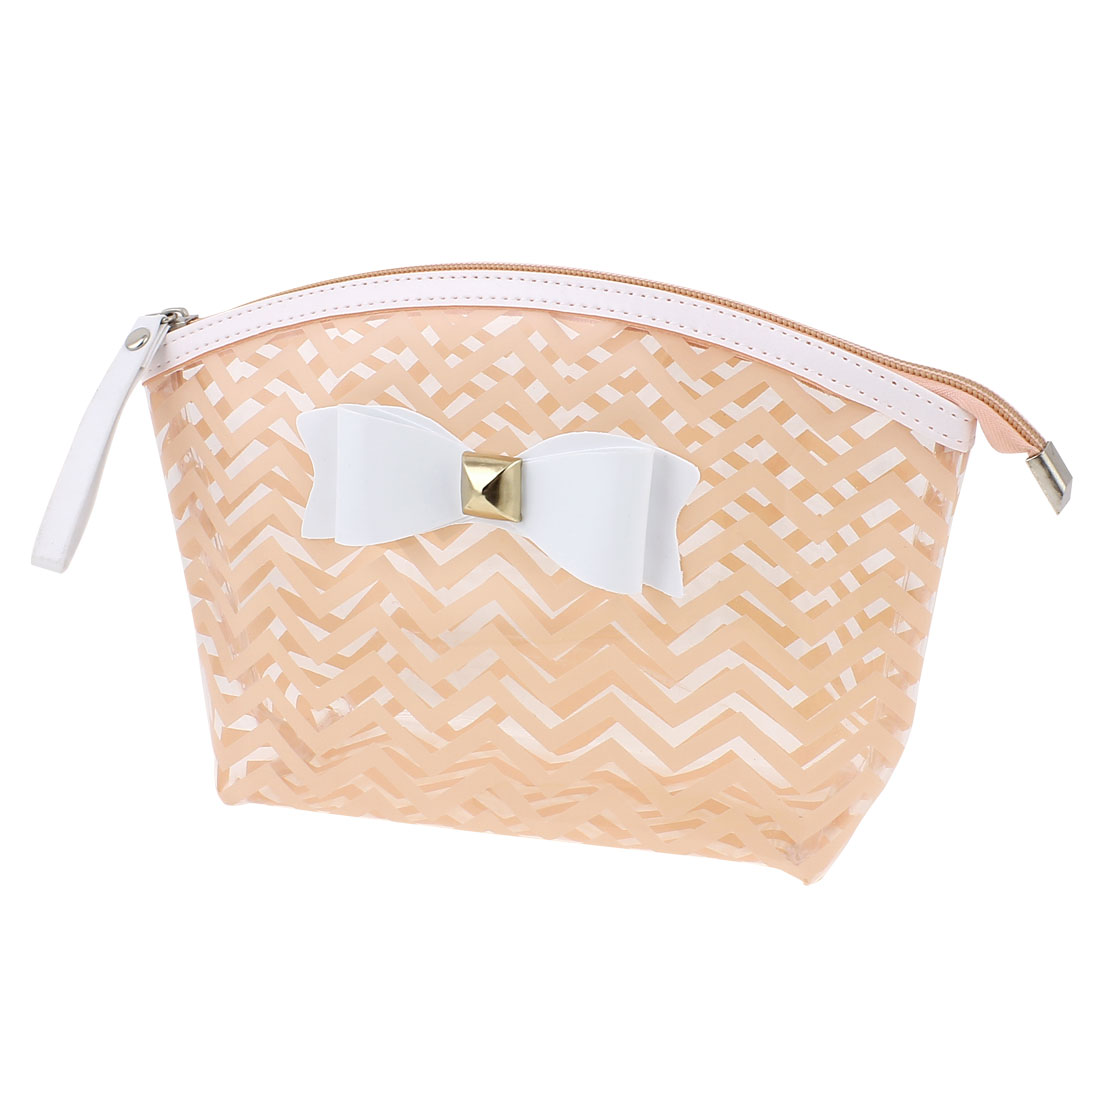 Lady Travel Portable Zippered Bowknot Decor Wave Line Pattern PVC Cosmetic Makeup Bag Toiletries Sundrise Holder Pale Pink